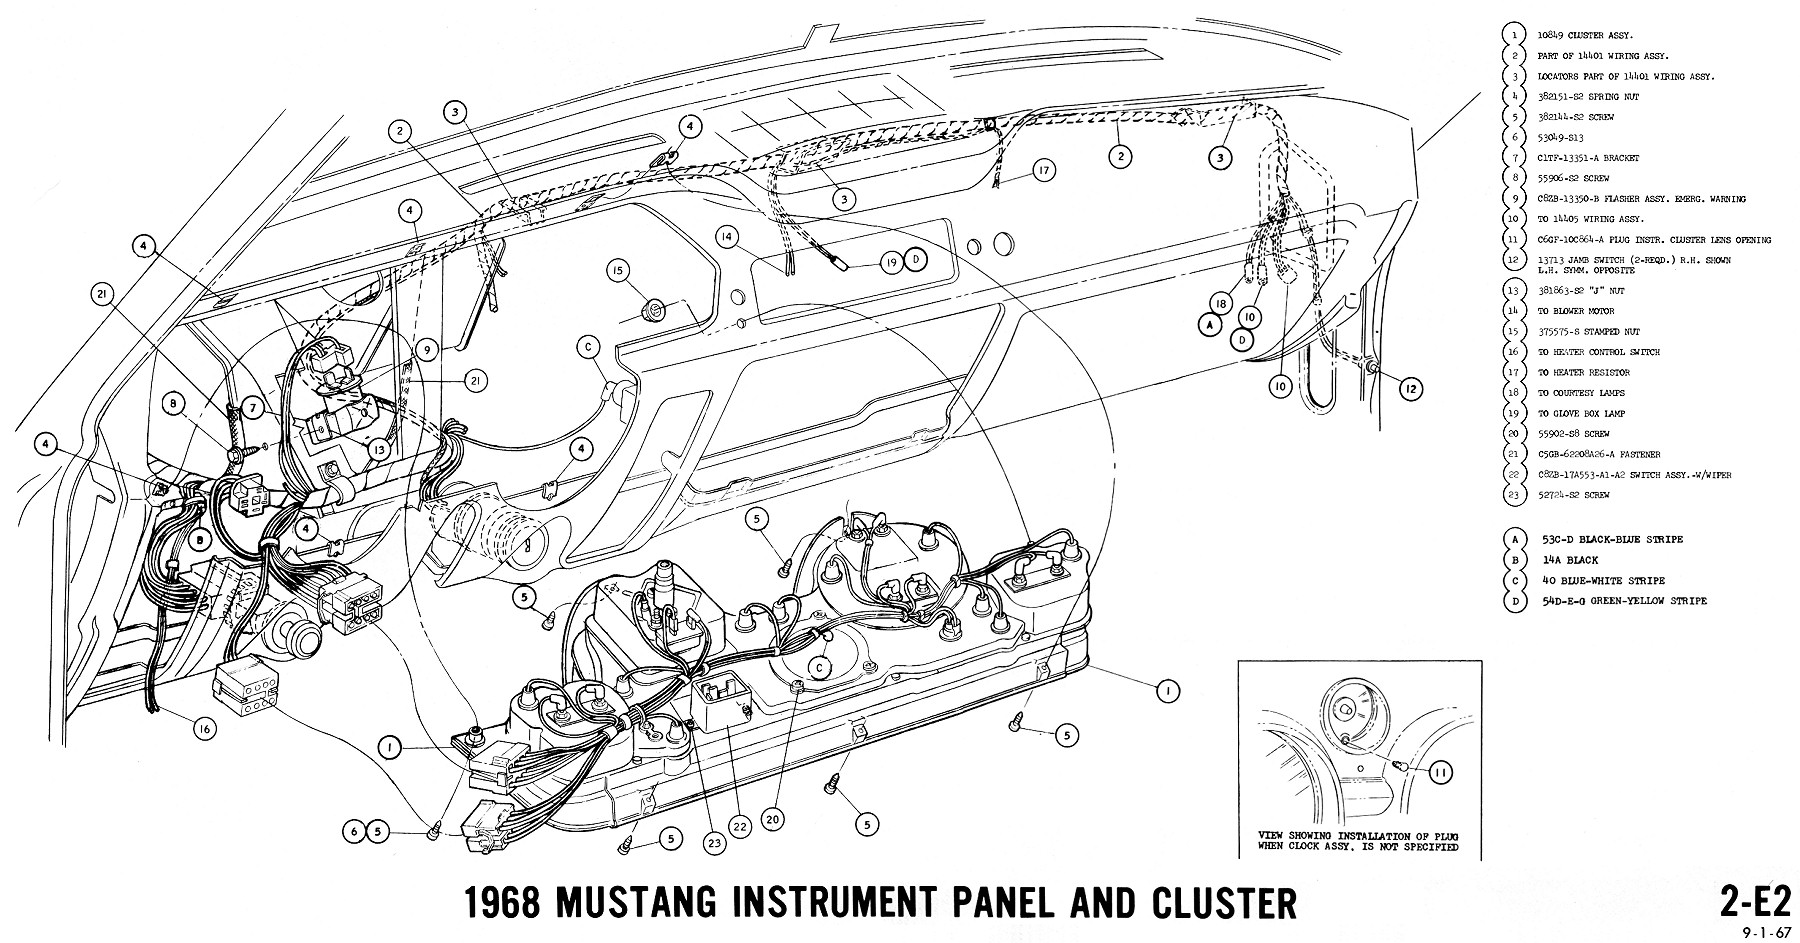 Windshield Wiper Wiring Diagram Ford 1969 Library 1965 Chevy Corvette 1968 Mustang Instruments 2